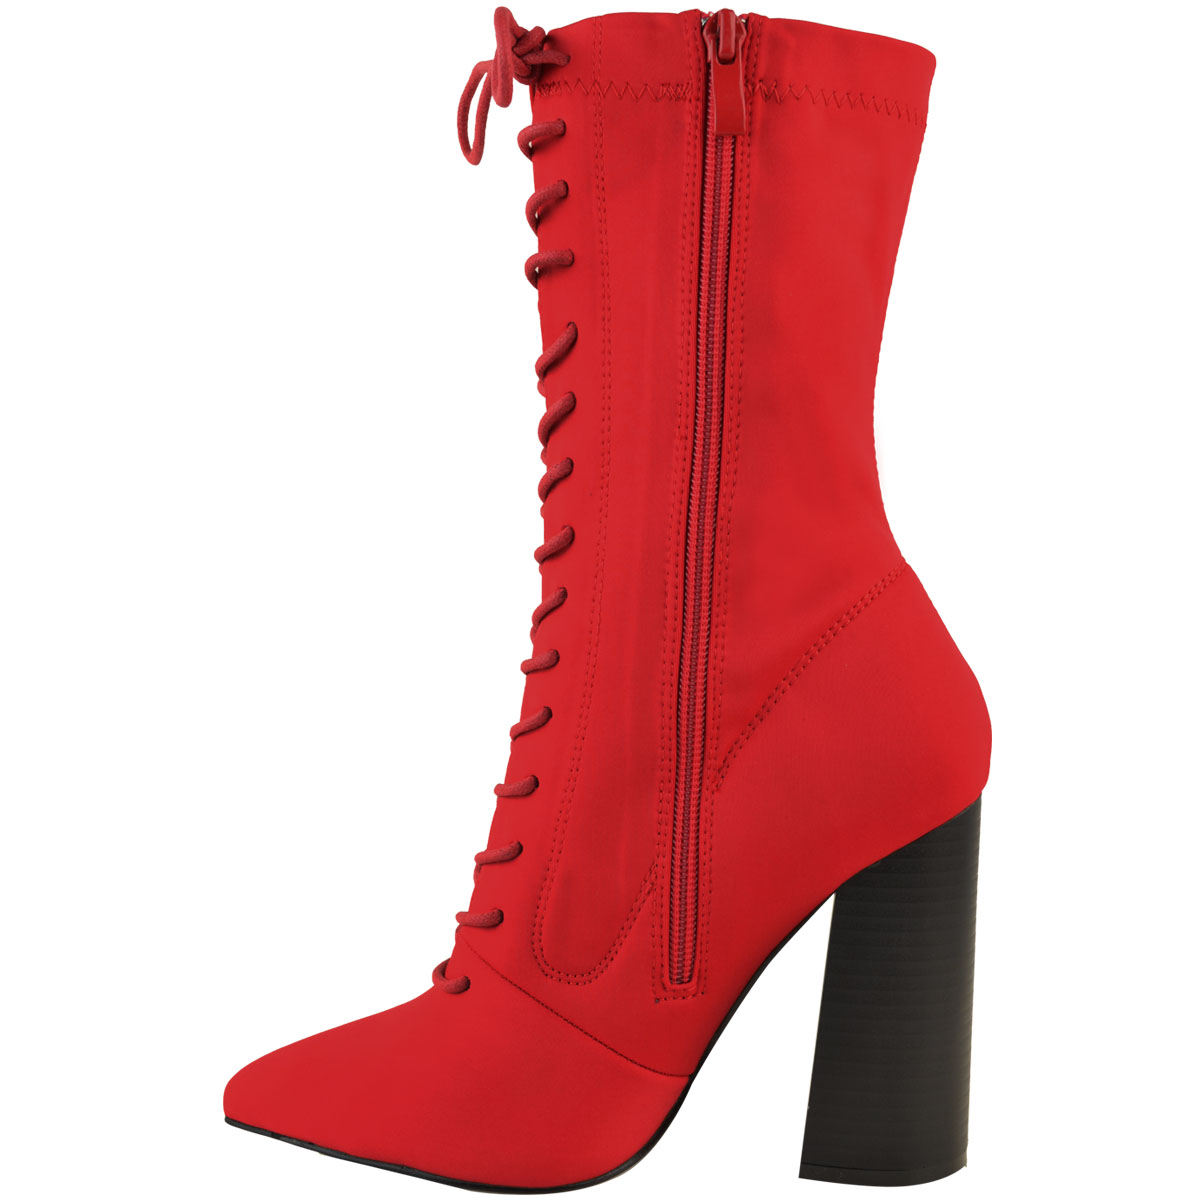 Womens-Ladies-New-Calf-Ankle-Boots-Lycra-Lace-Up-Shoes-Pointed-Toe-Stretch-Size miniatuur 8